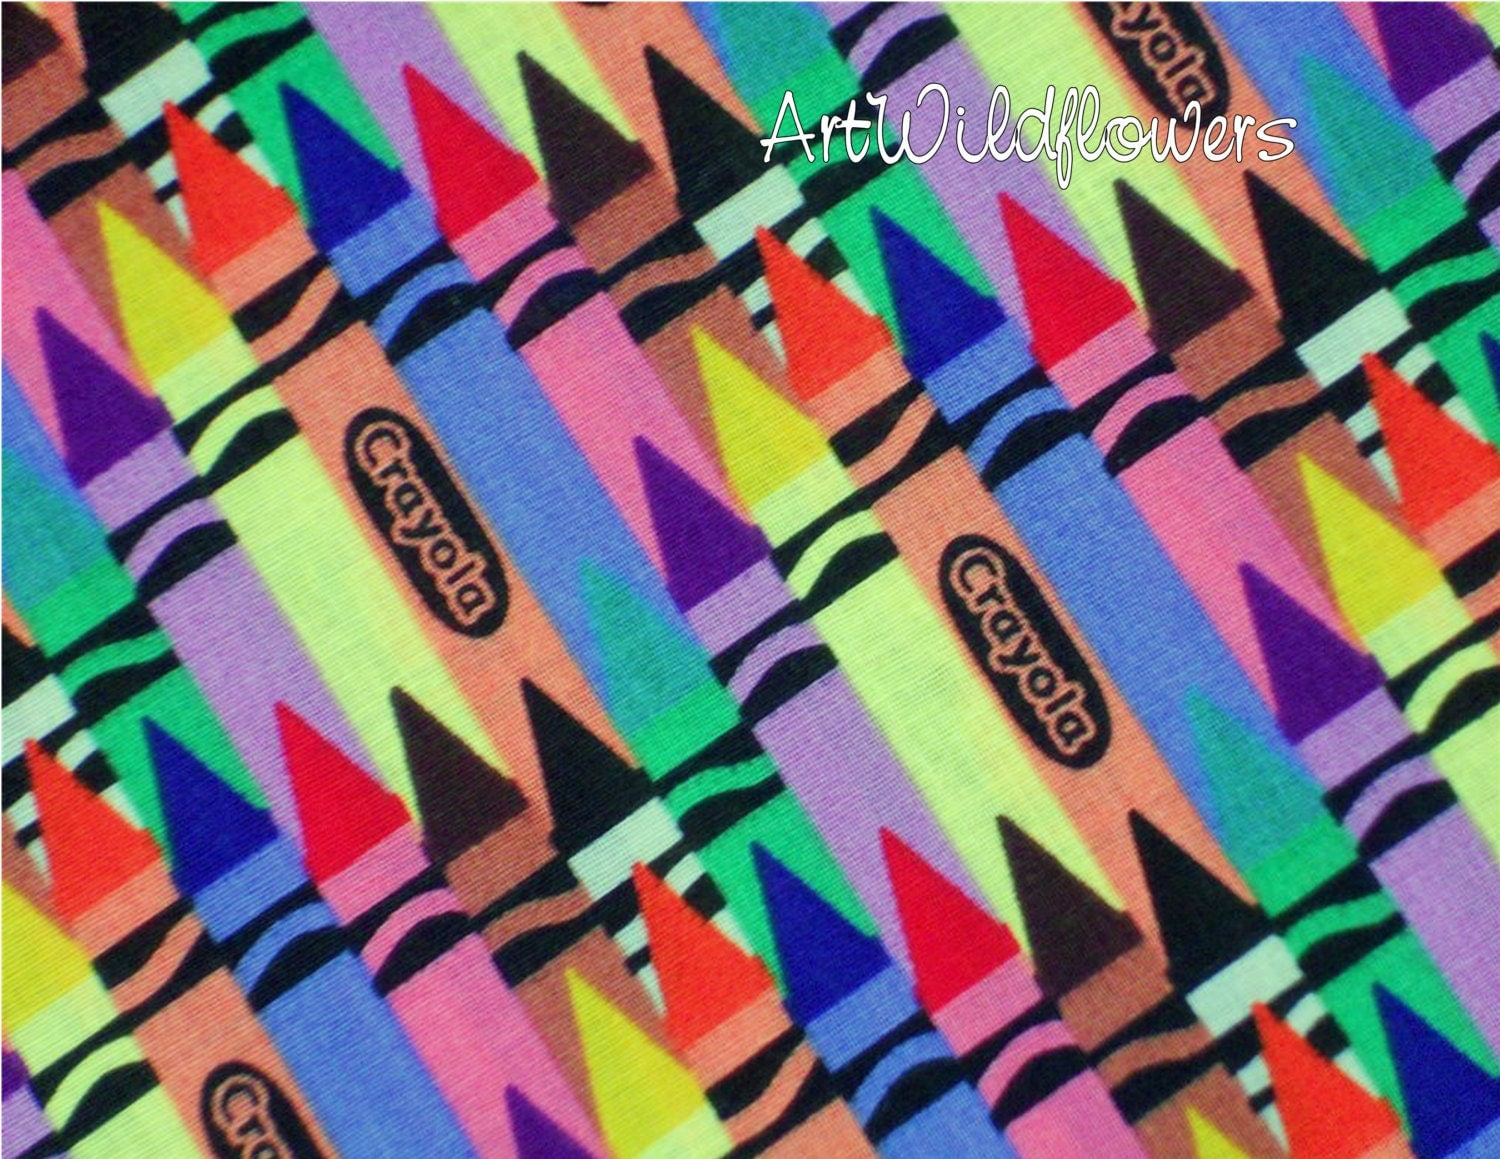 Fabric Crayola Crayon Quilting Fabric For Kids By